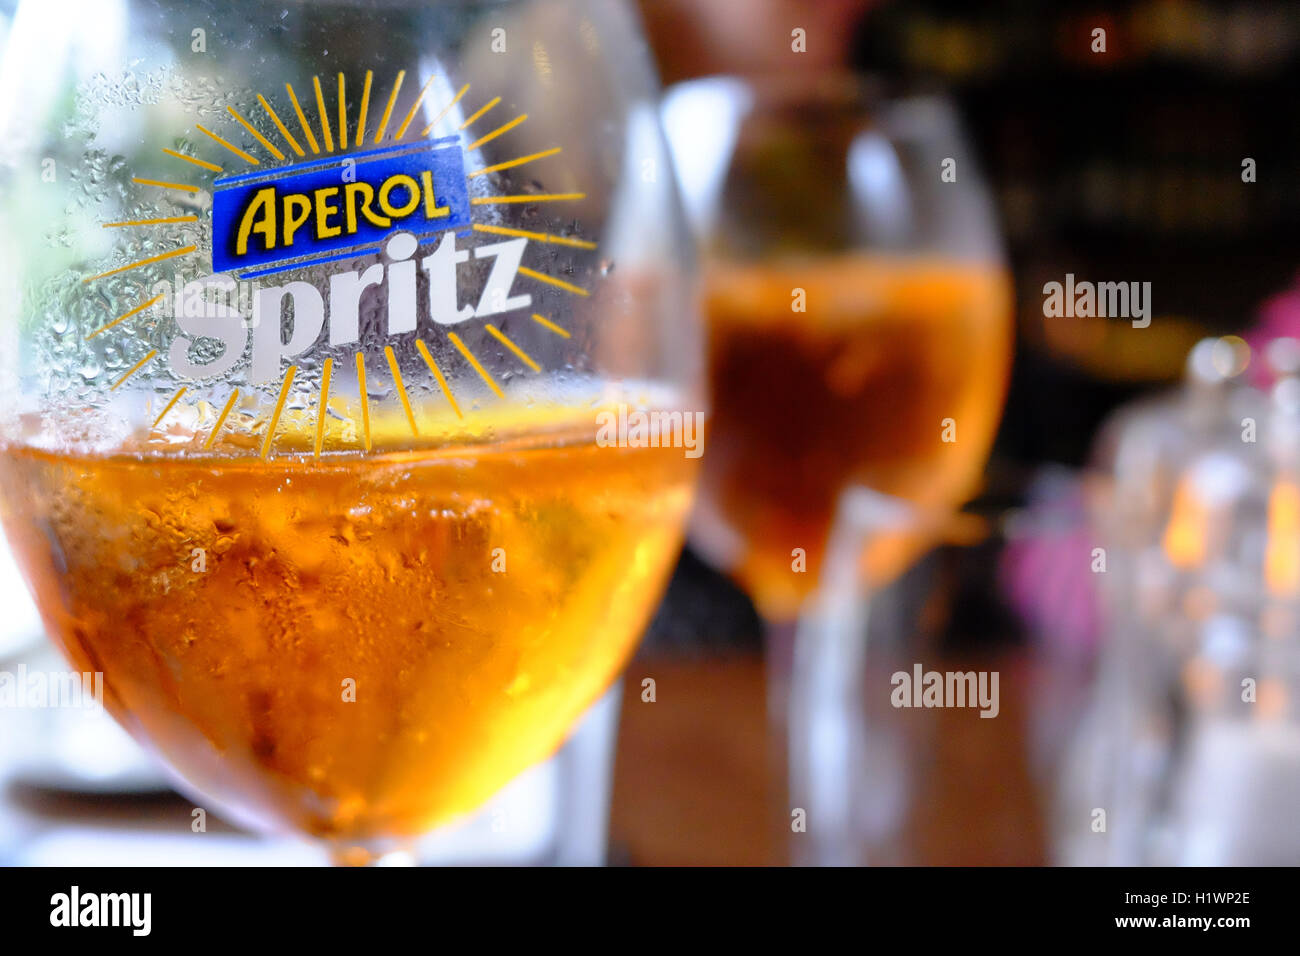 Two glasses of Aperol Spritz with ice in labeled glasses on a table - Stock Image